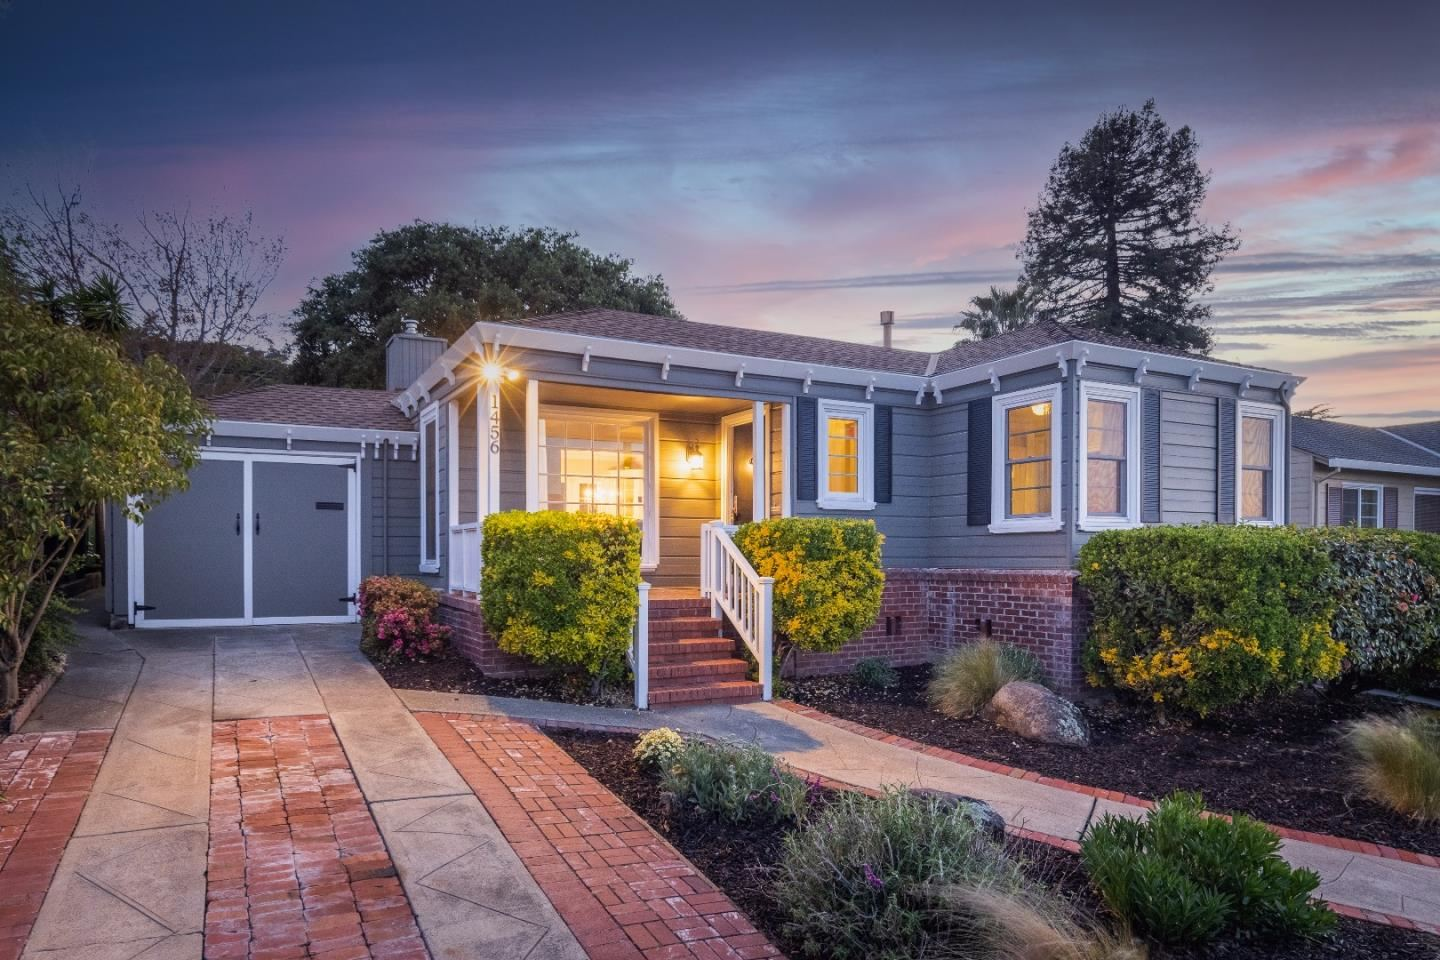 Photo for 1456 Fifth Avenue, BELMONT, CA 94002 (MLS # ML81838987)